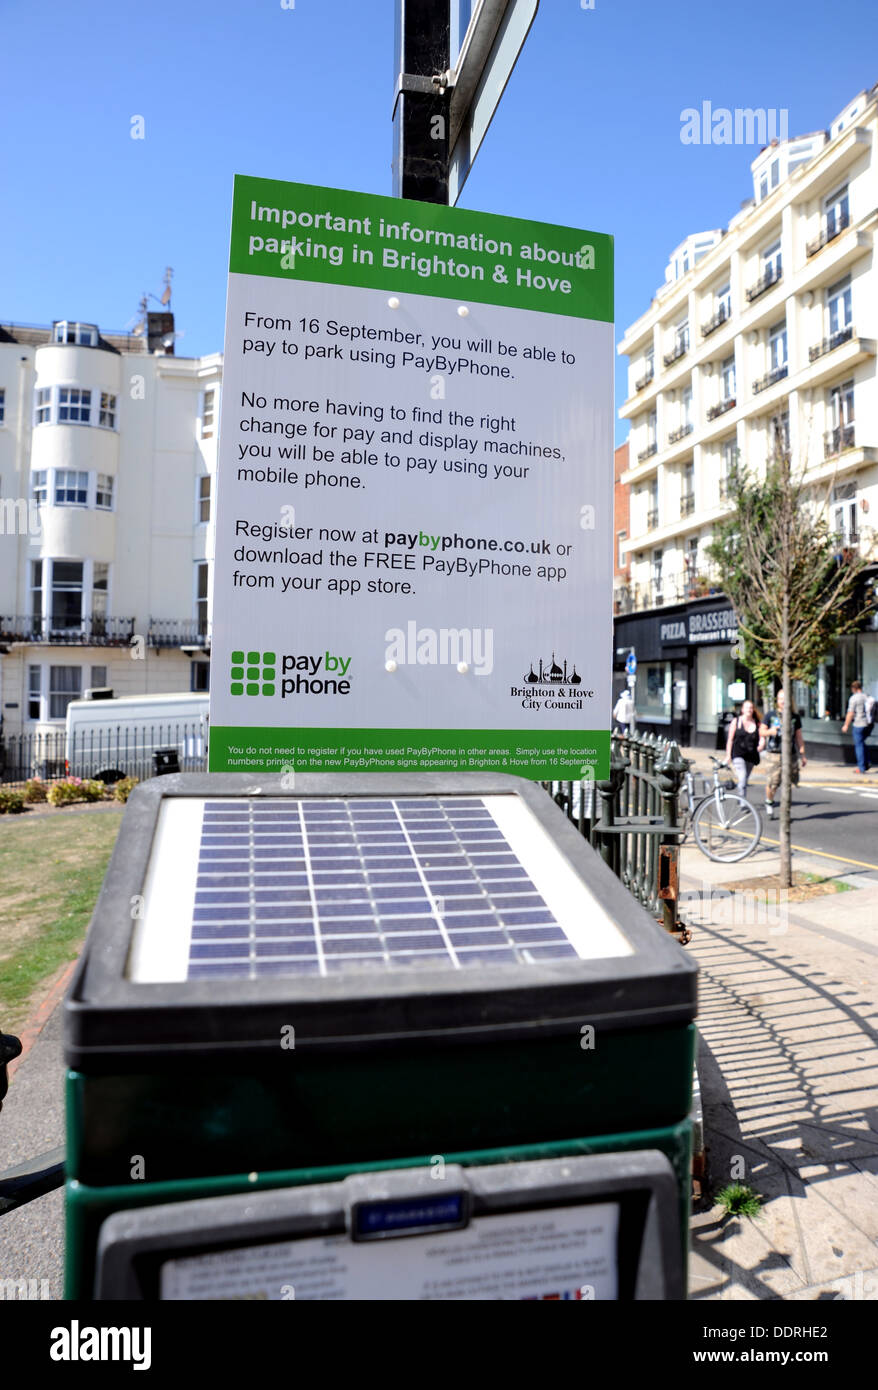 New Brighton and Hove City Council signs explaining how to buy car parking tickets using your mobile or smart phone app on solar powered meter - Stock Image